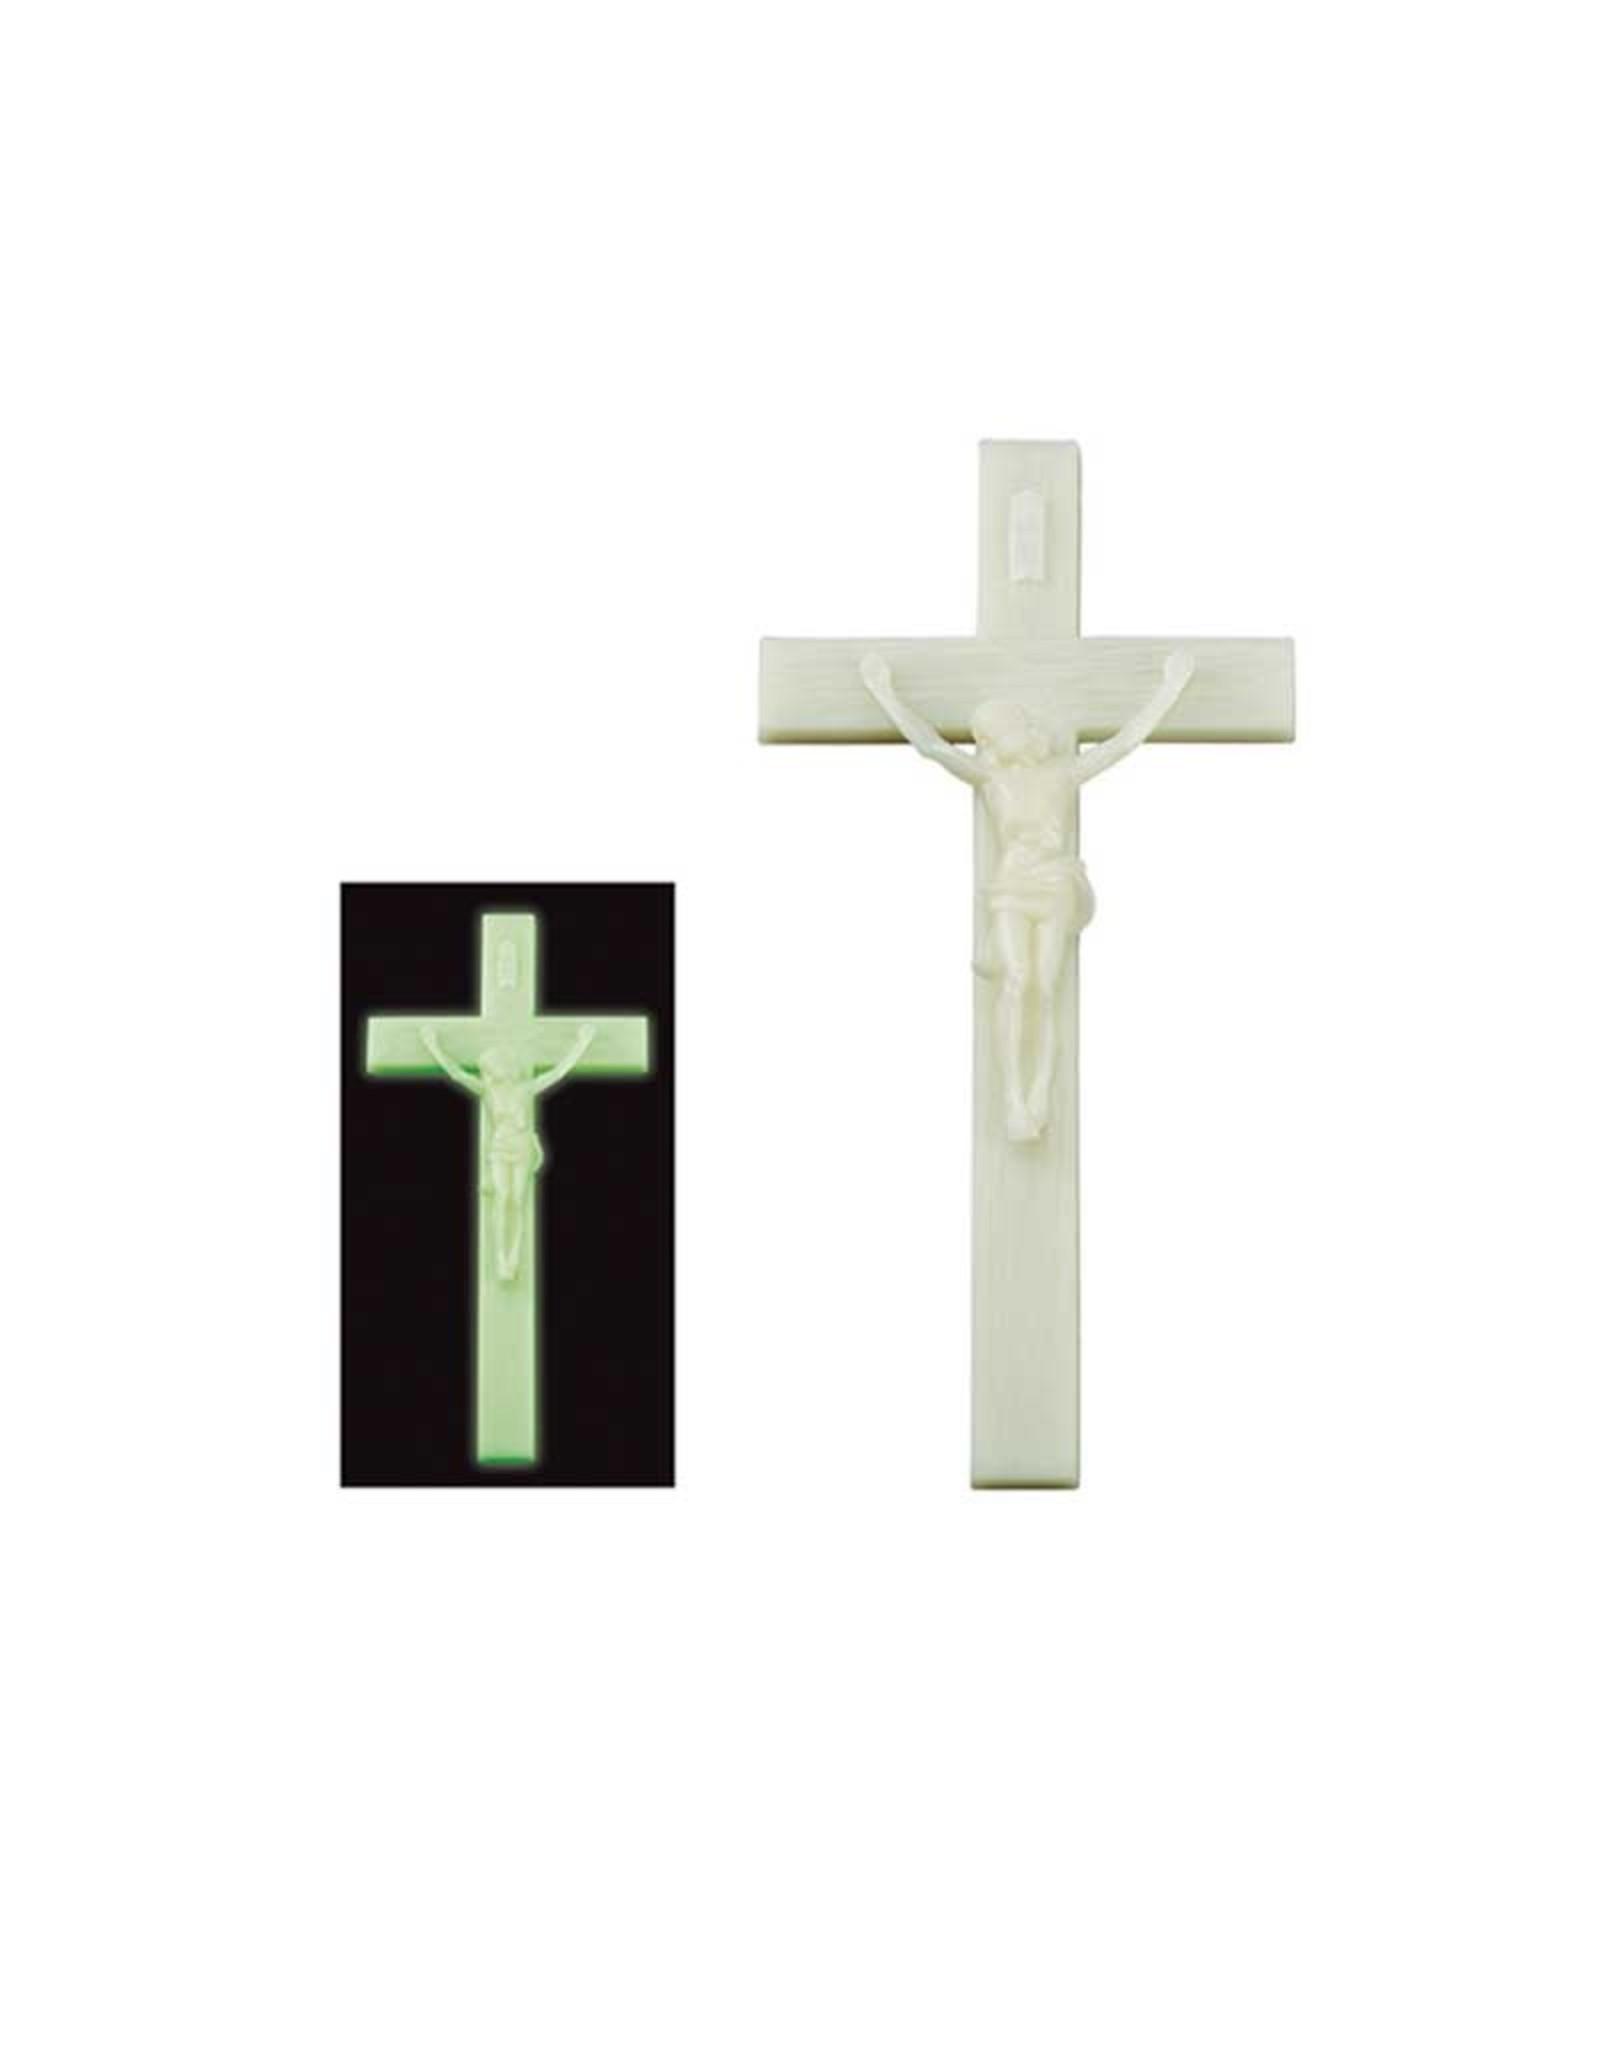 Phosphorescent crucifix